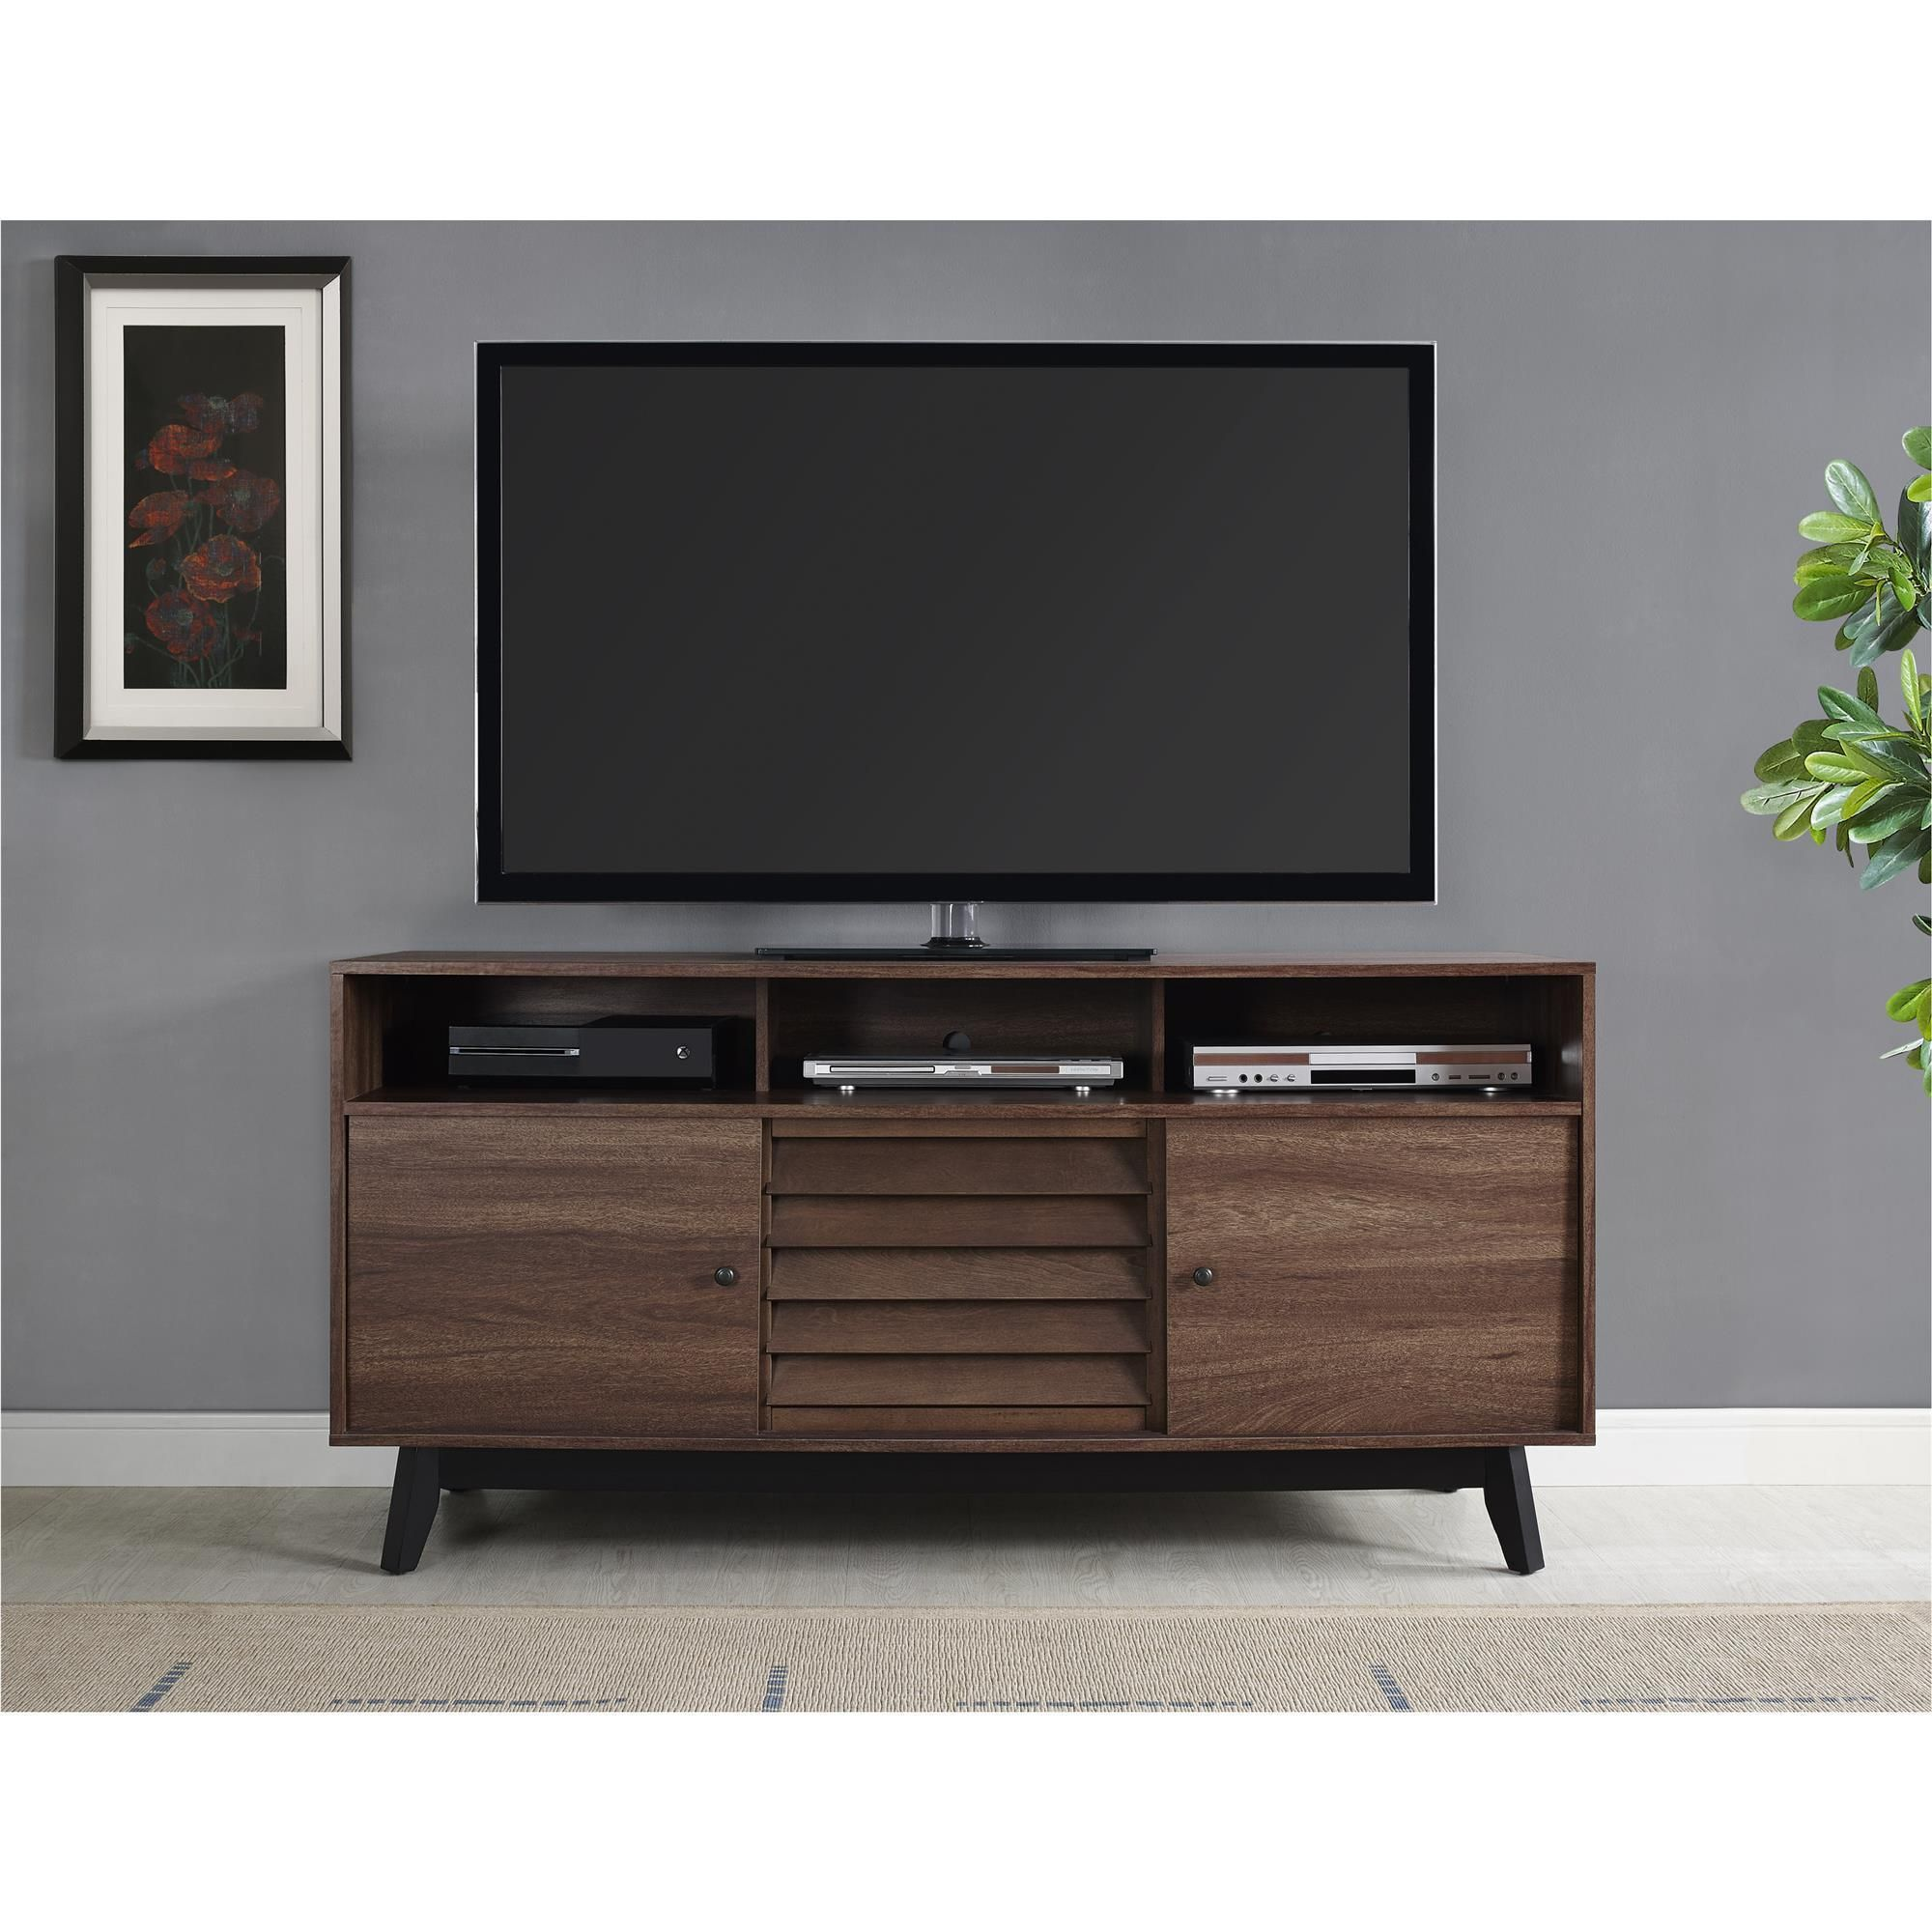 Ameriwood Home Vaughn Tv Stand For Tvs Up To 60 Inches Wide Tv